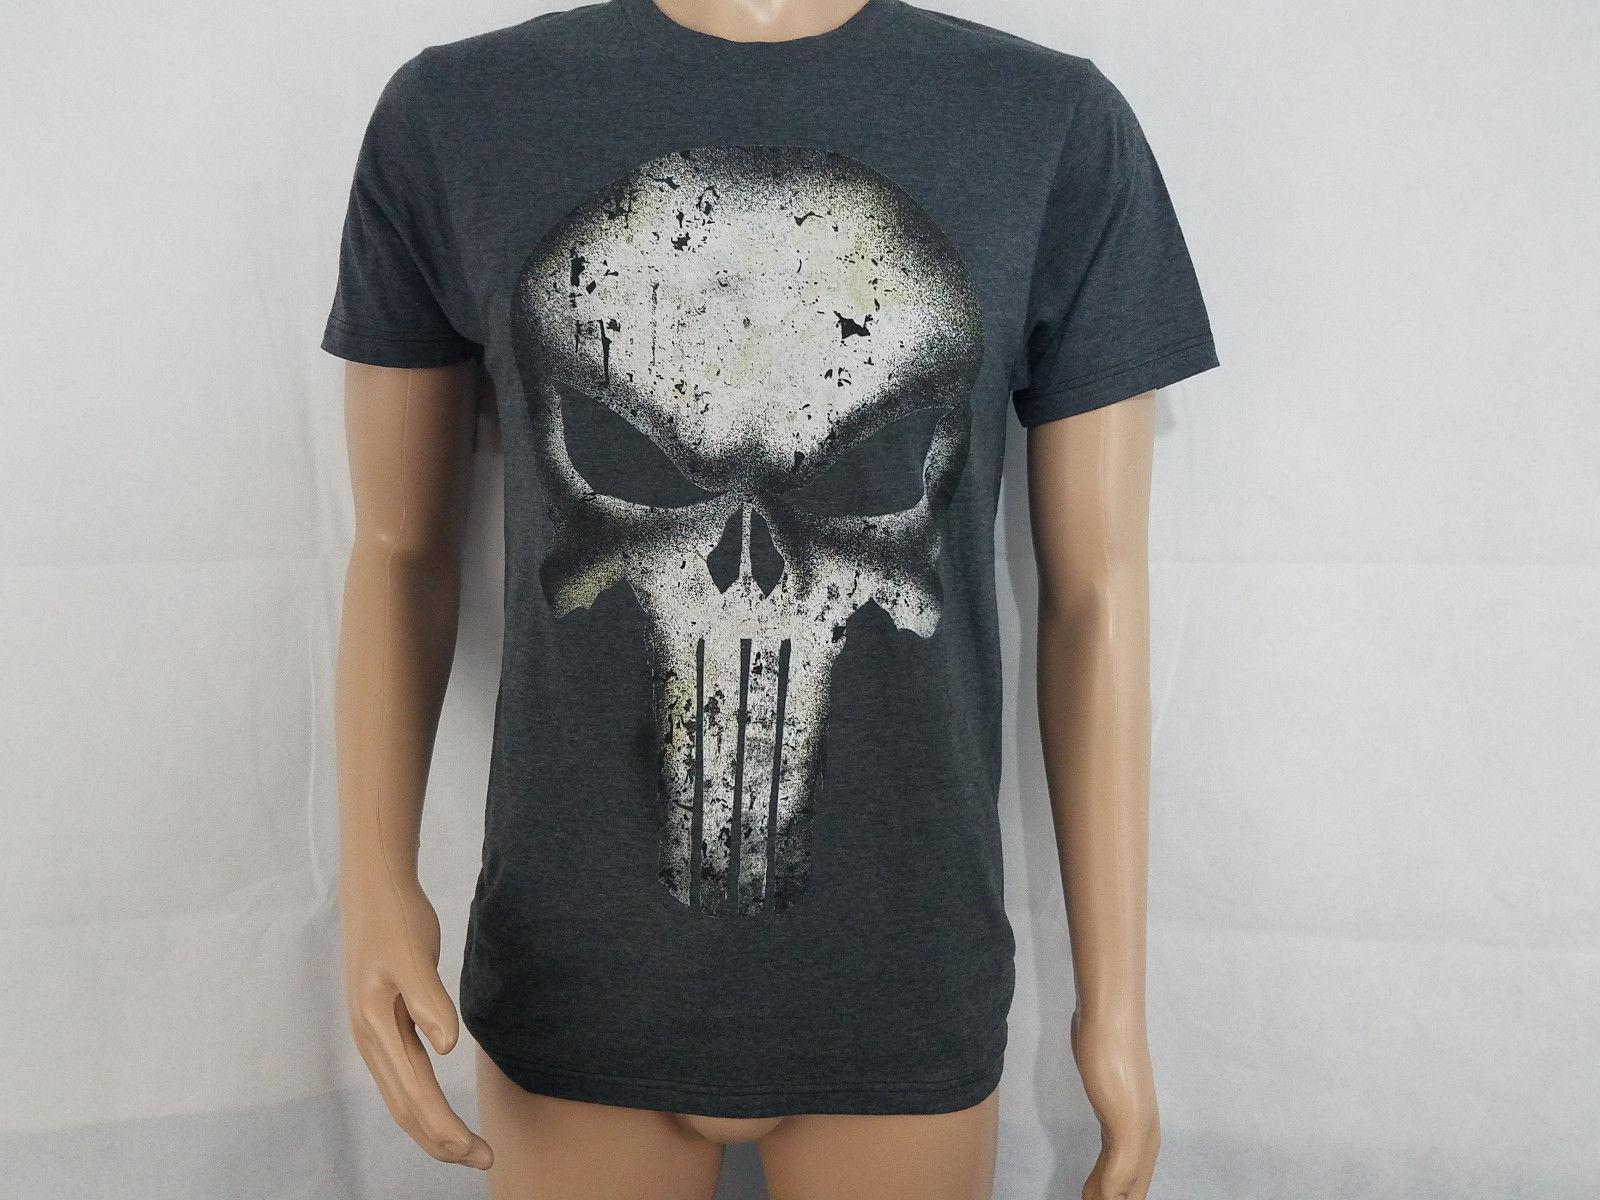 15362762c Marvel Comics Mens The Punisher Graphic T Shirt Tee NWT Small S Gray Super  HeroFunny Unisex Casual Tshirt Top Silly T Shirts Interesting T Shirts From  ...